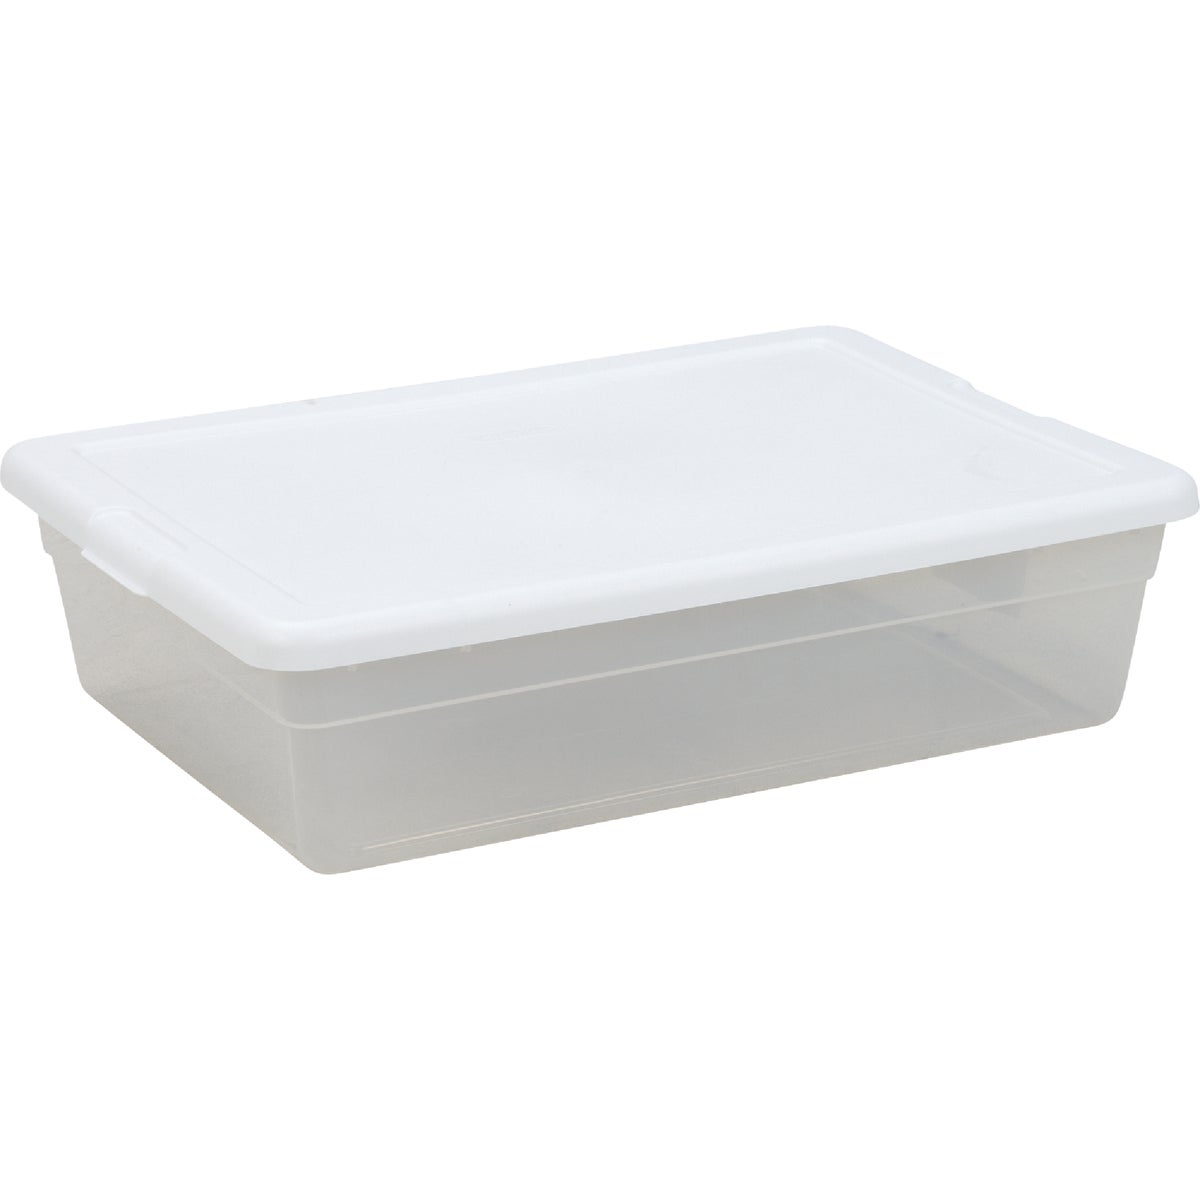 28QT CLEAR STORAGE BOX - 16558010 by Sterilite Corp